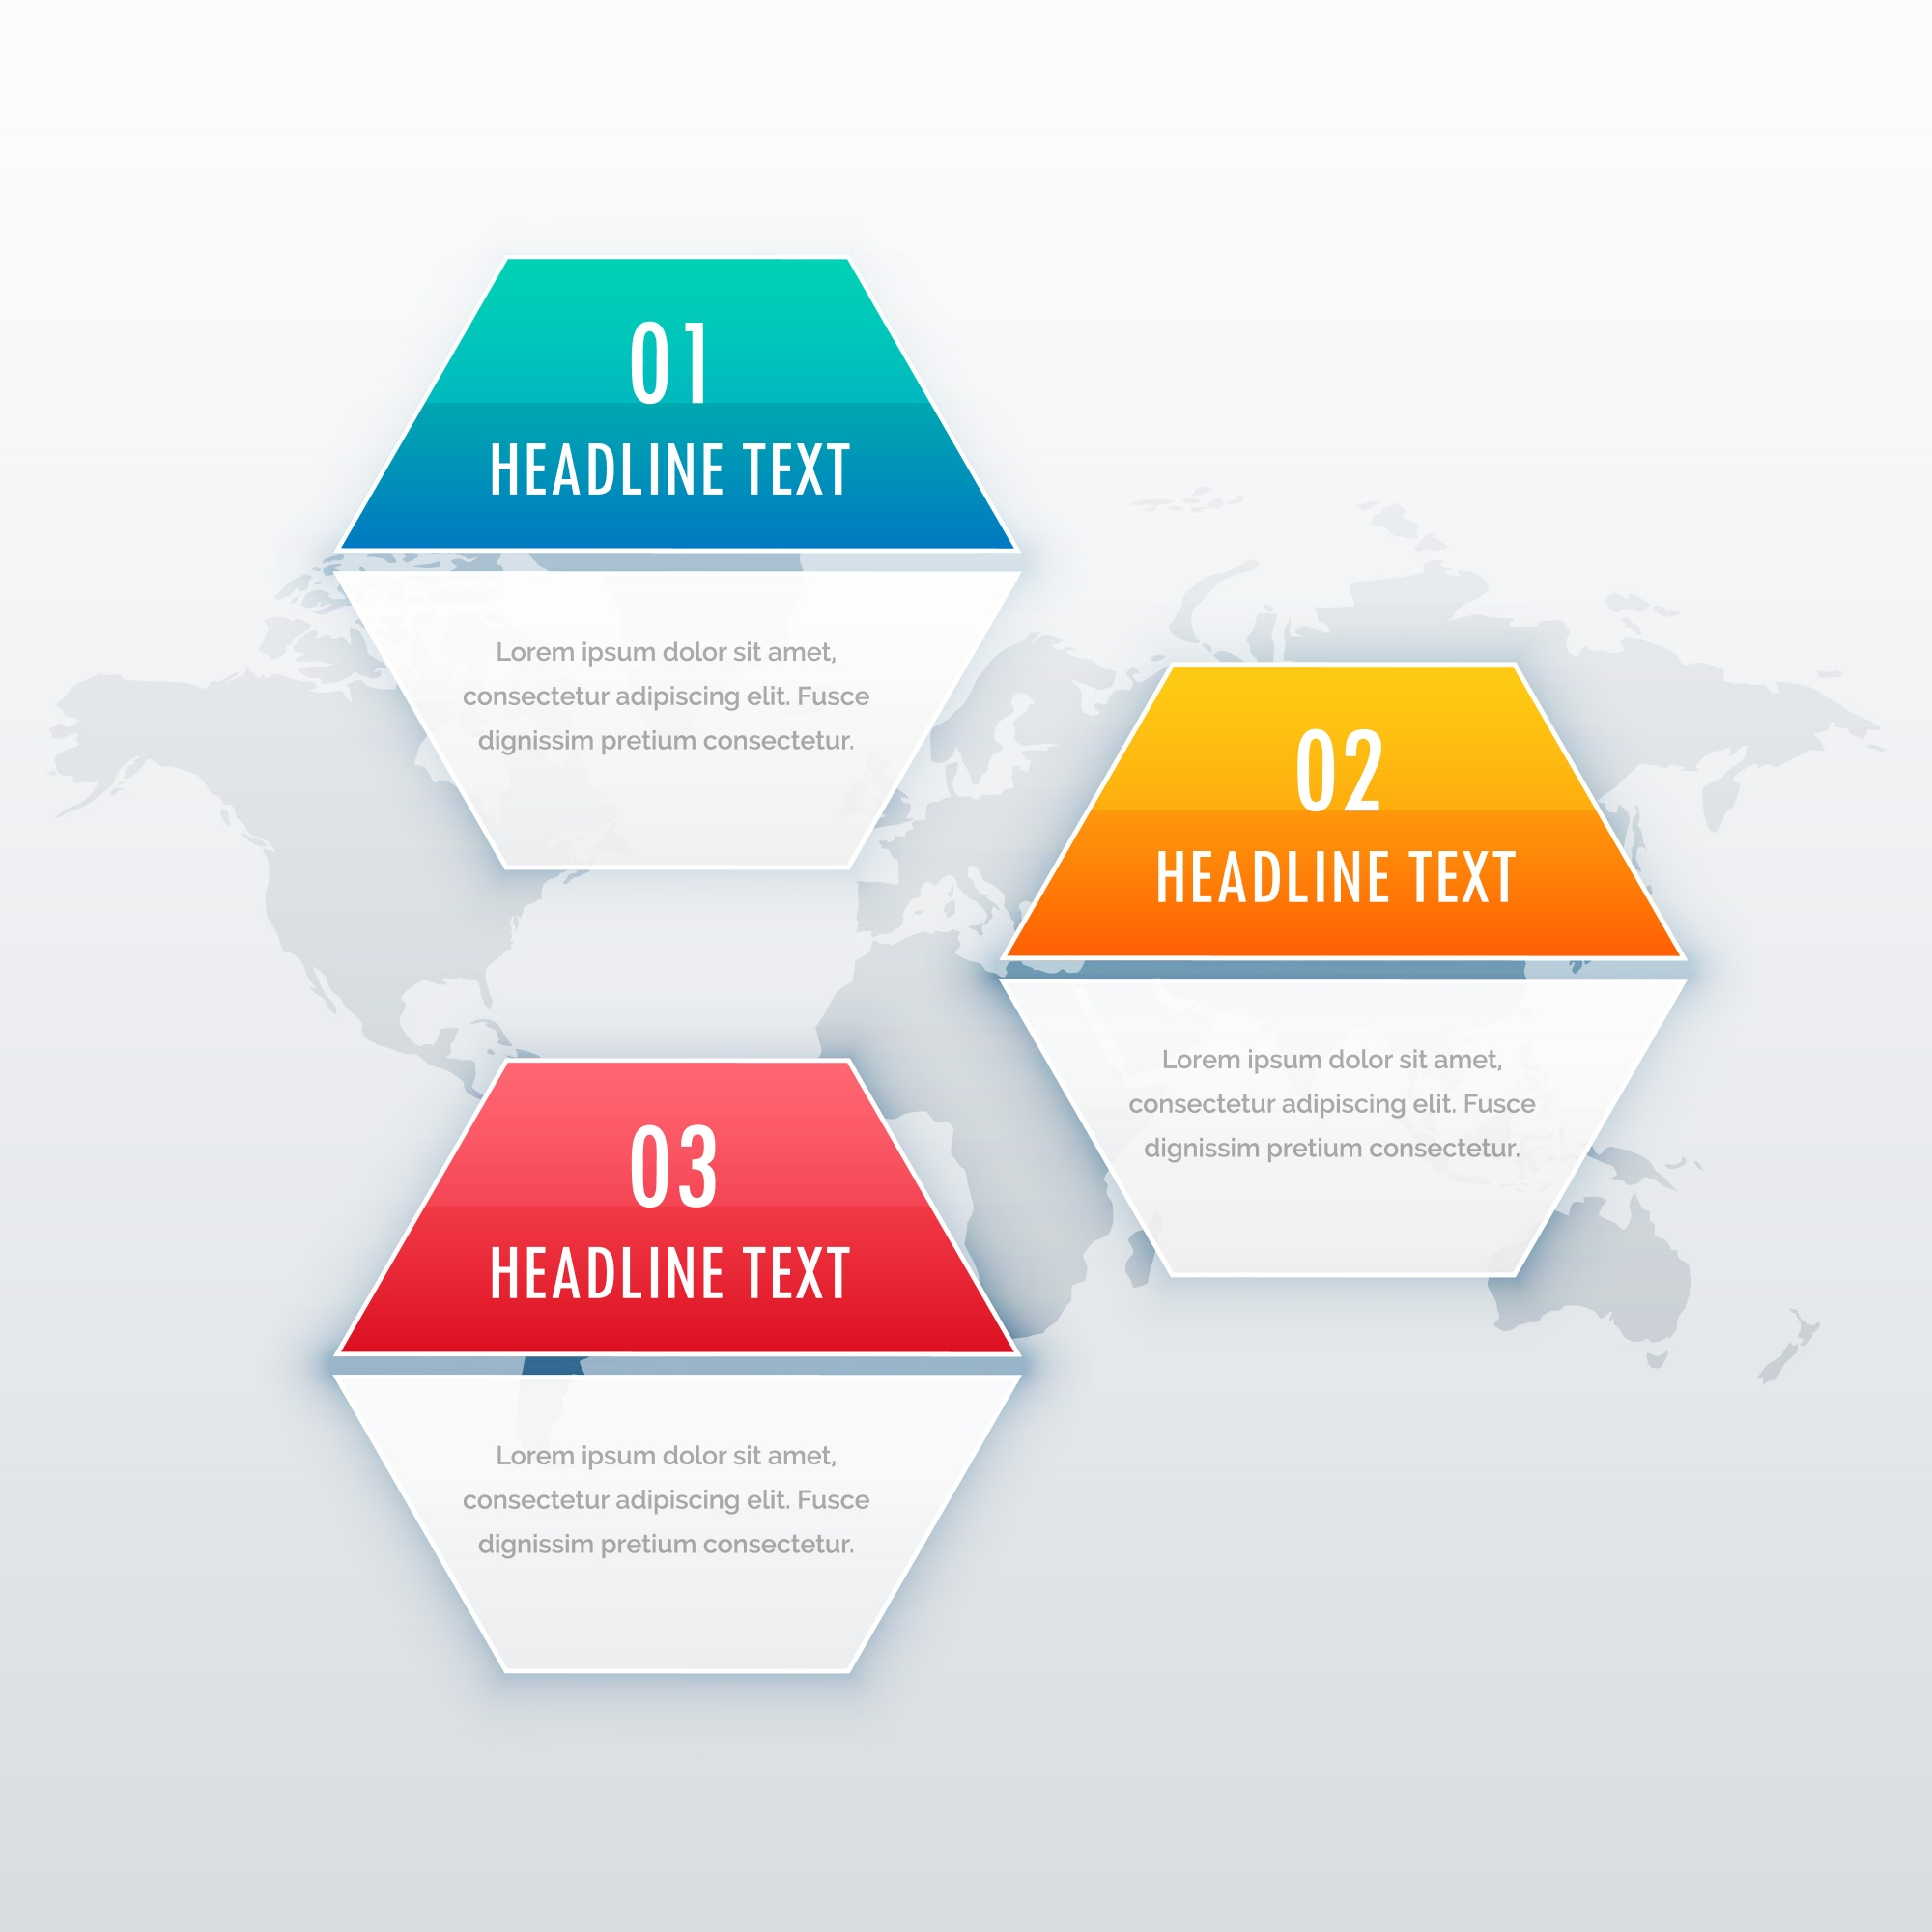 Moderne drie stappen infograph template ontwerp voor web presentatie of workflow diagram lay-out